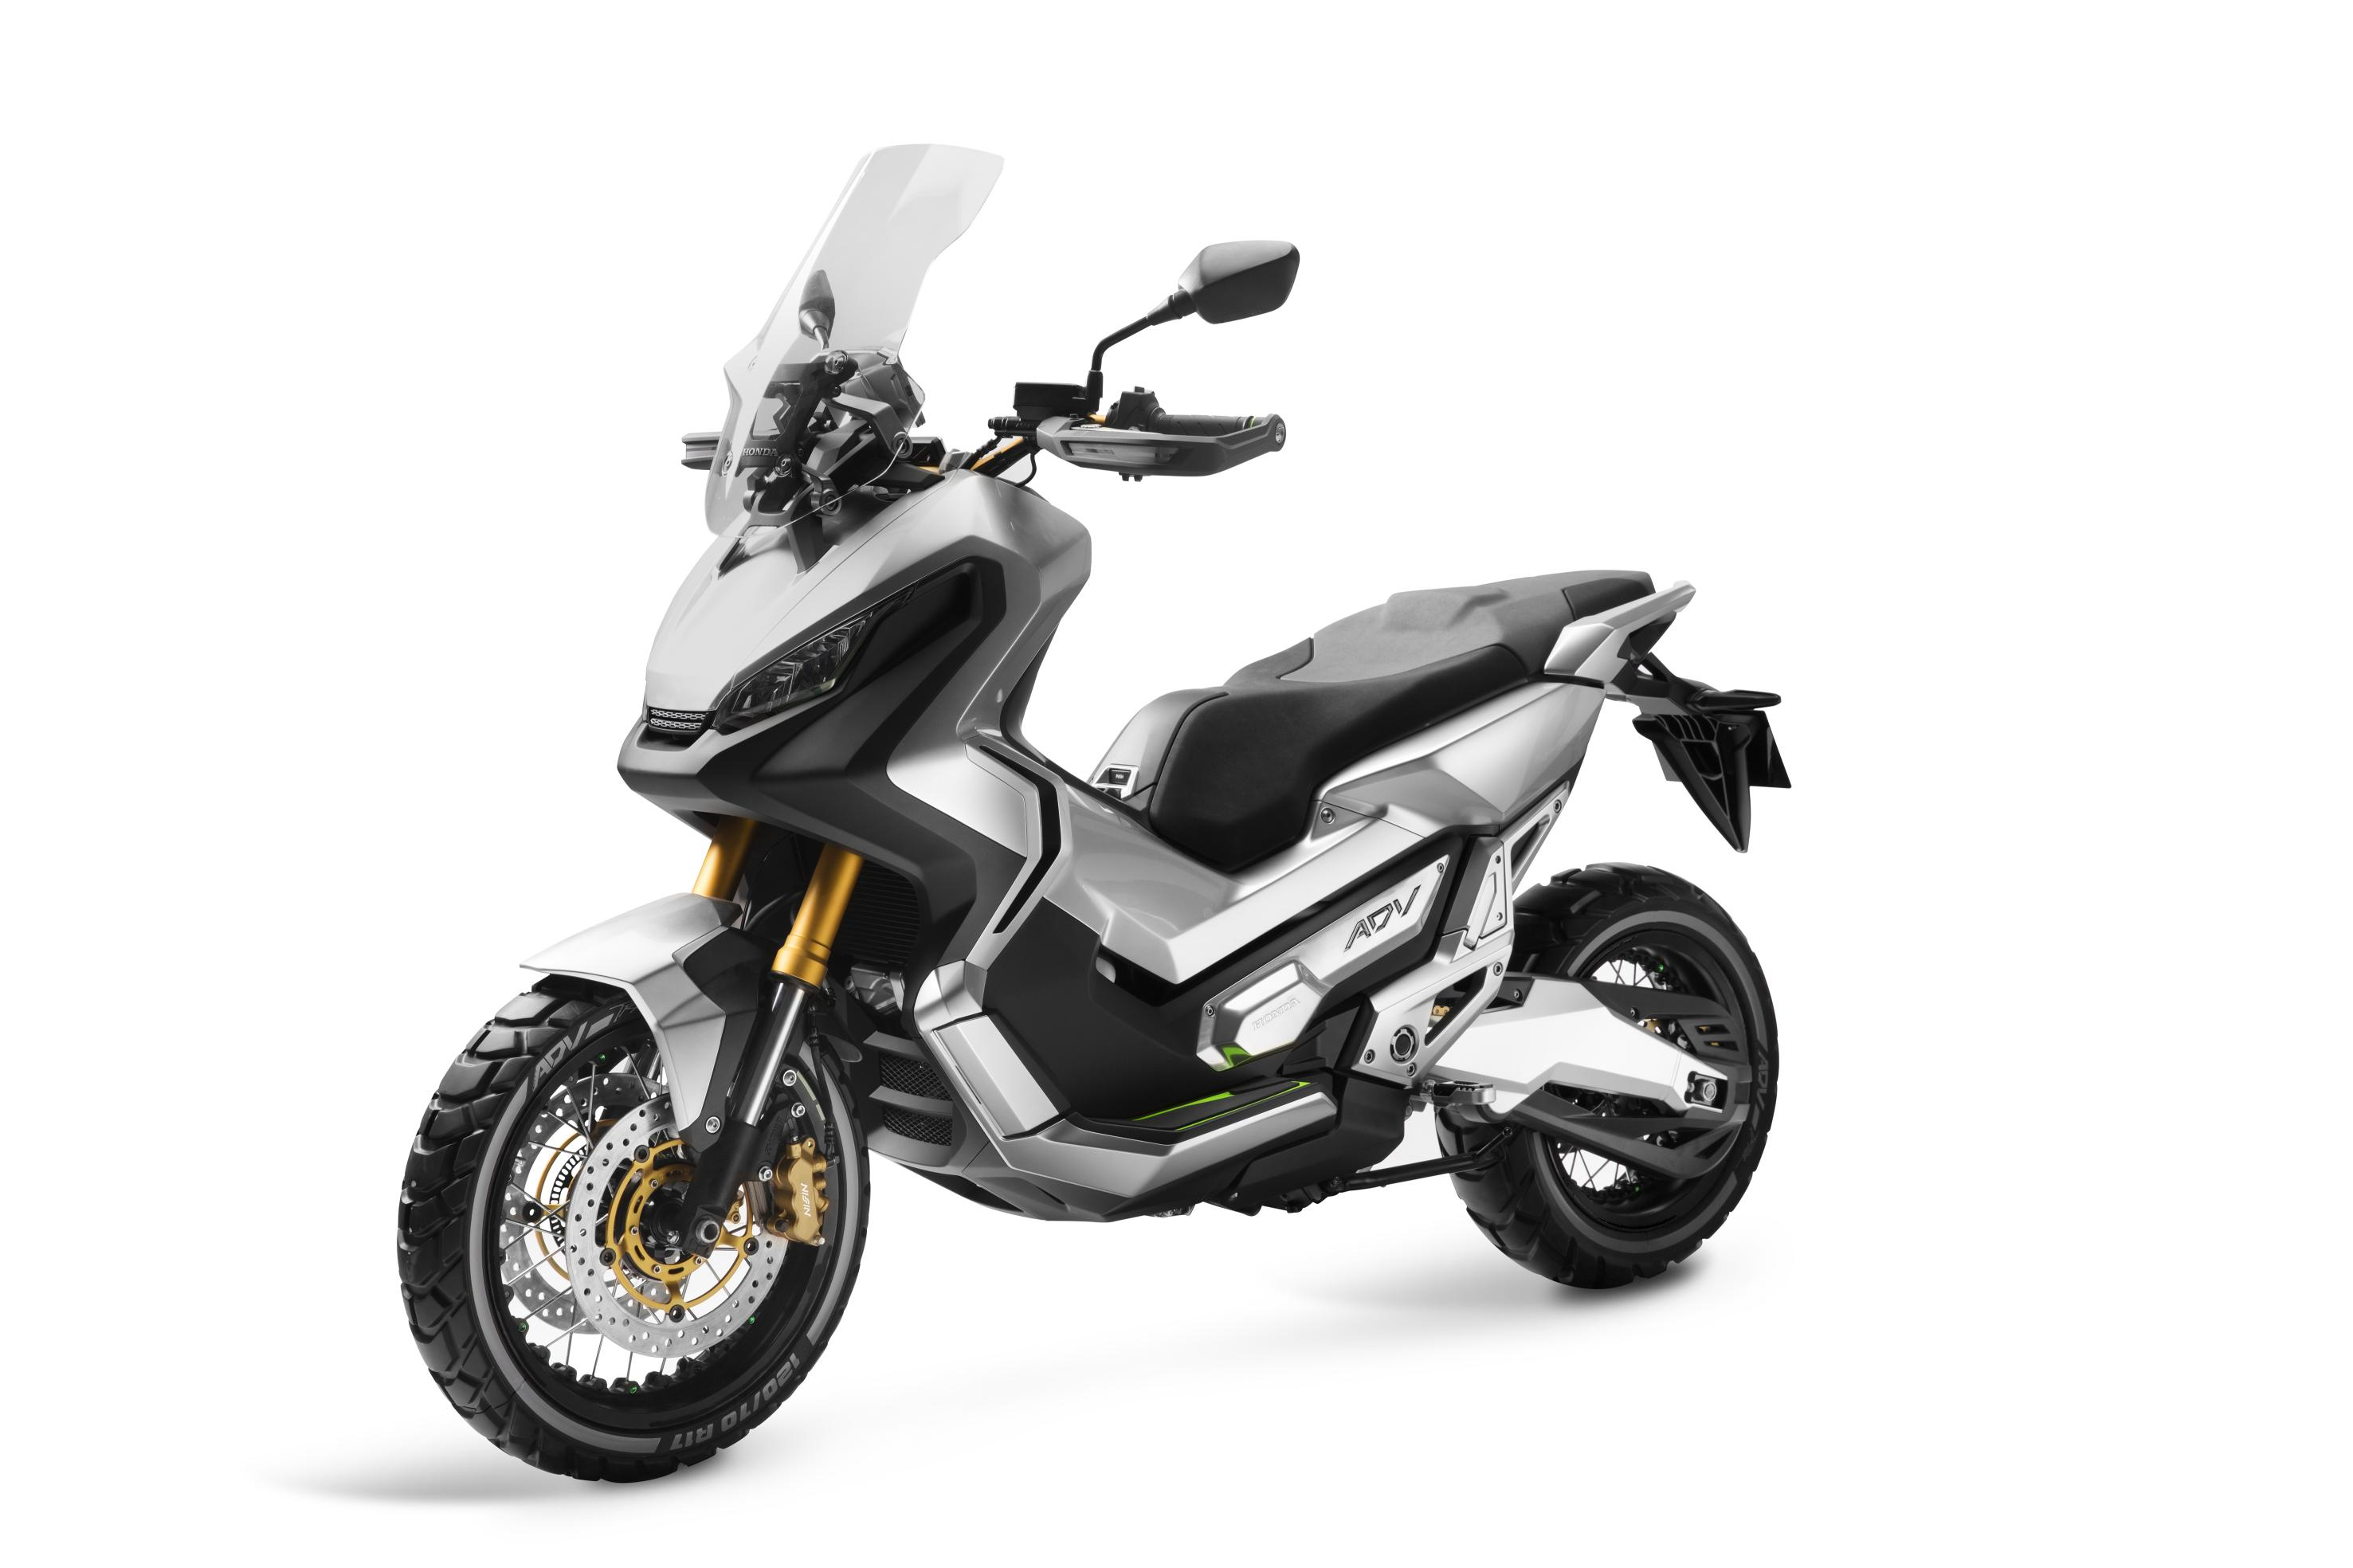 Honda's adventure scooter 'available from 2017'